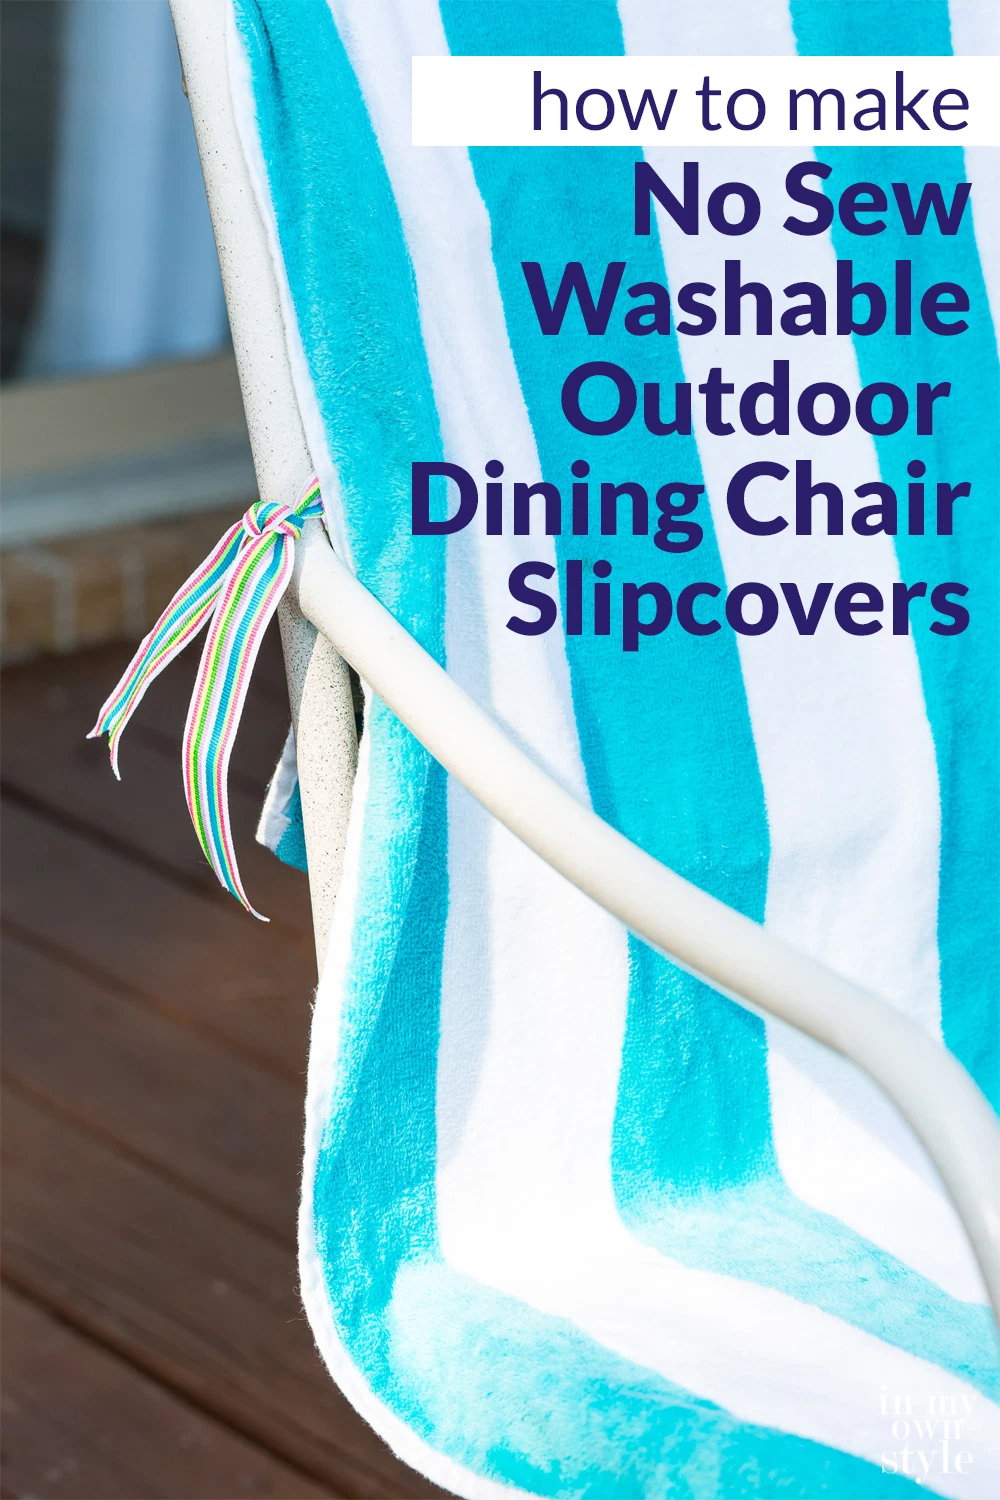 How to Make No Sew Slipcovers for Outdoor Dining Chairs in ...